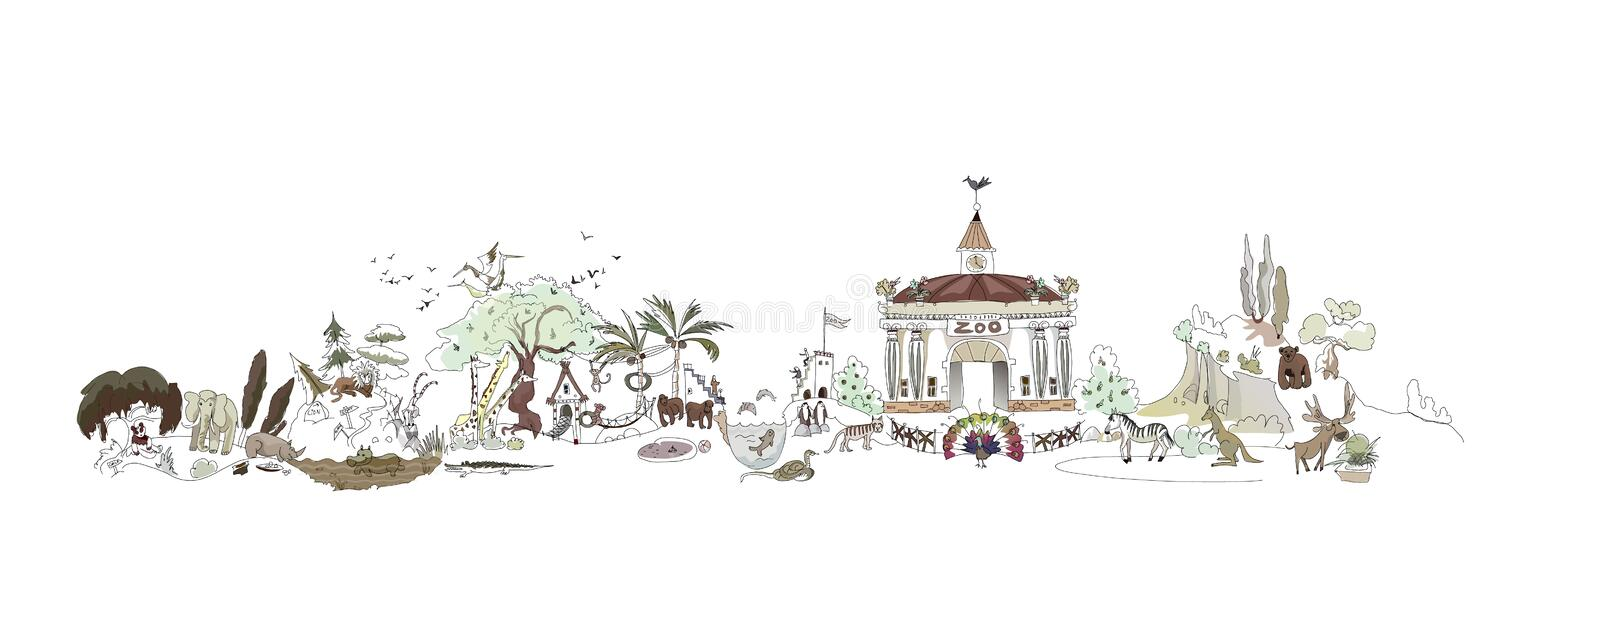 Zoo, illustration de parc de Safary, collection de ville illustration stock